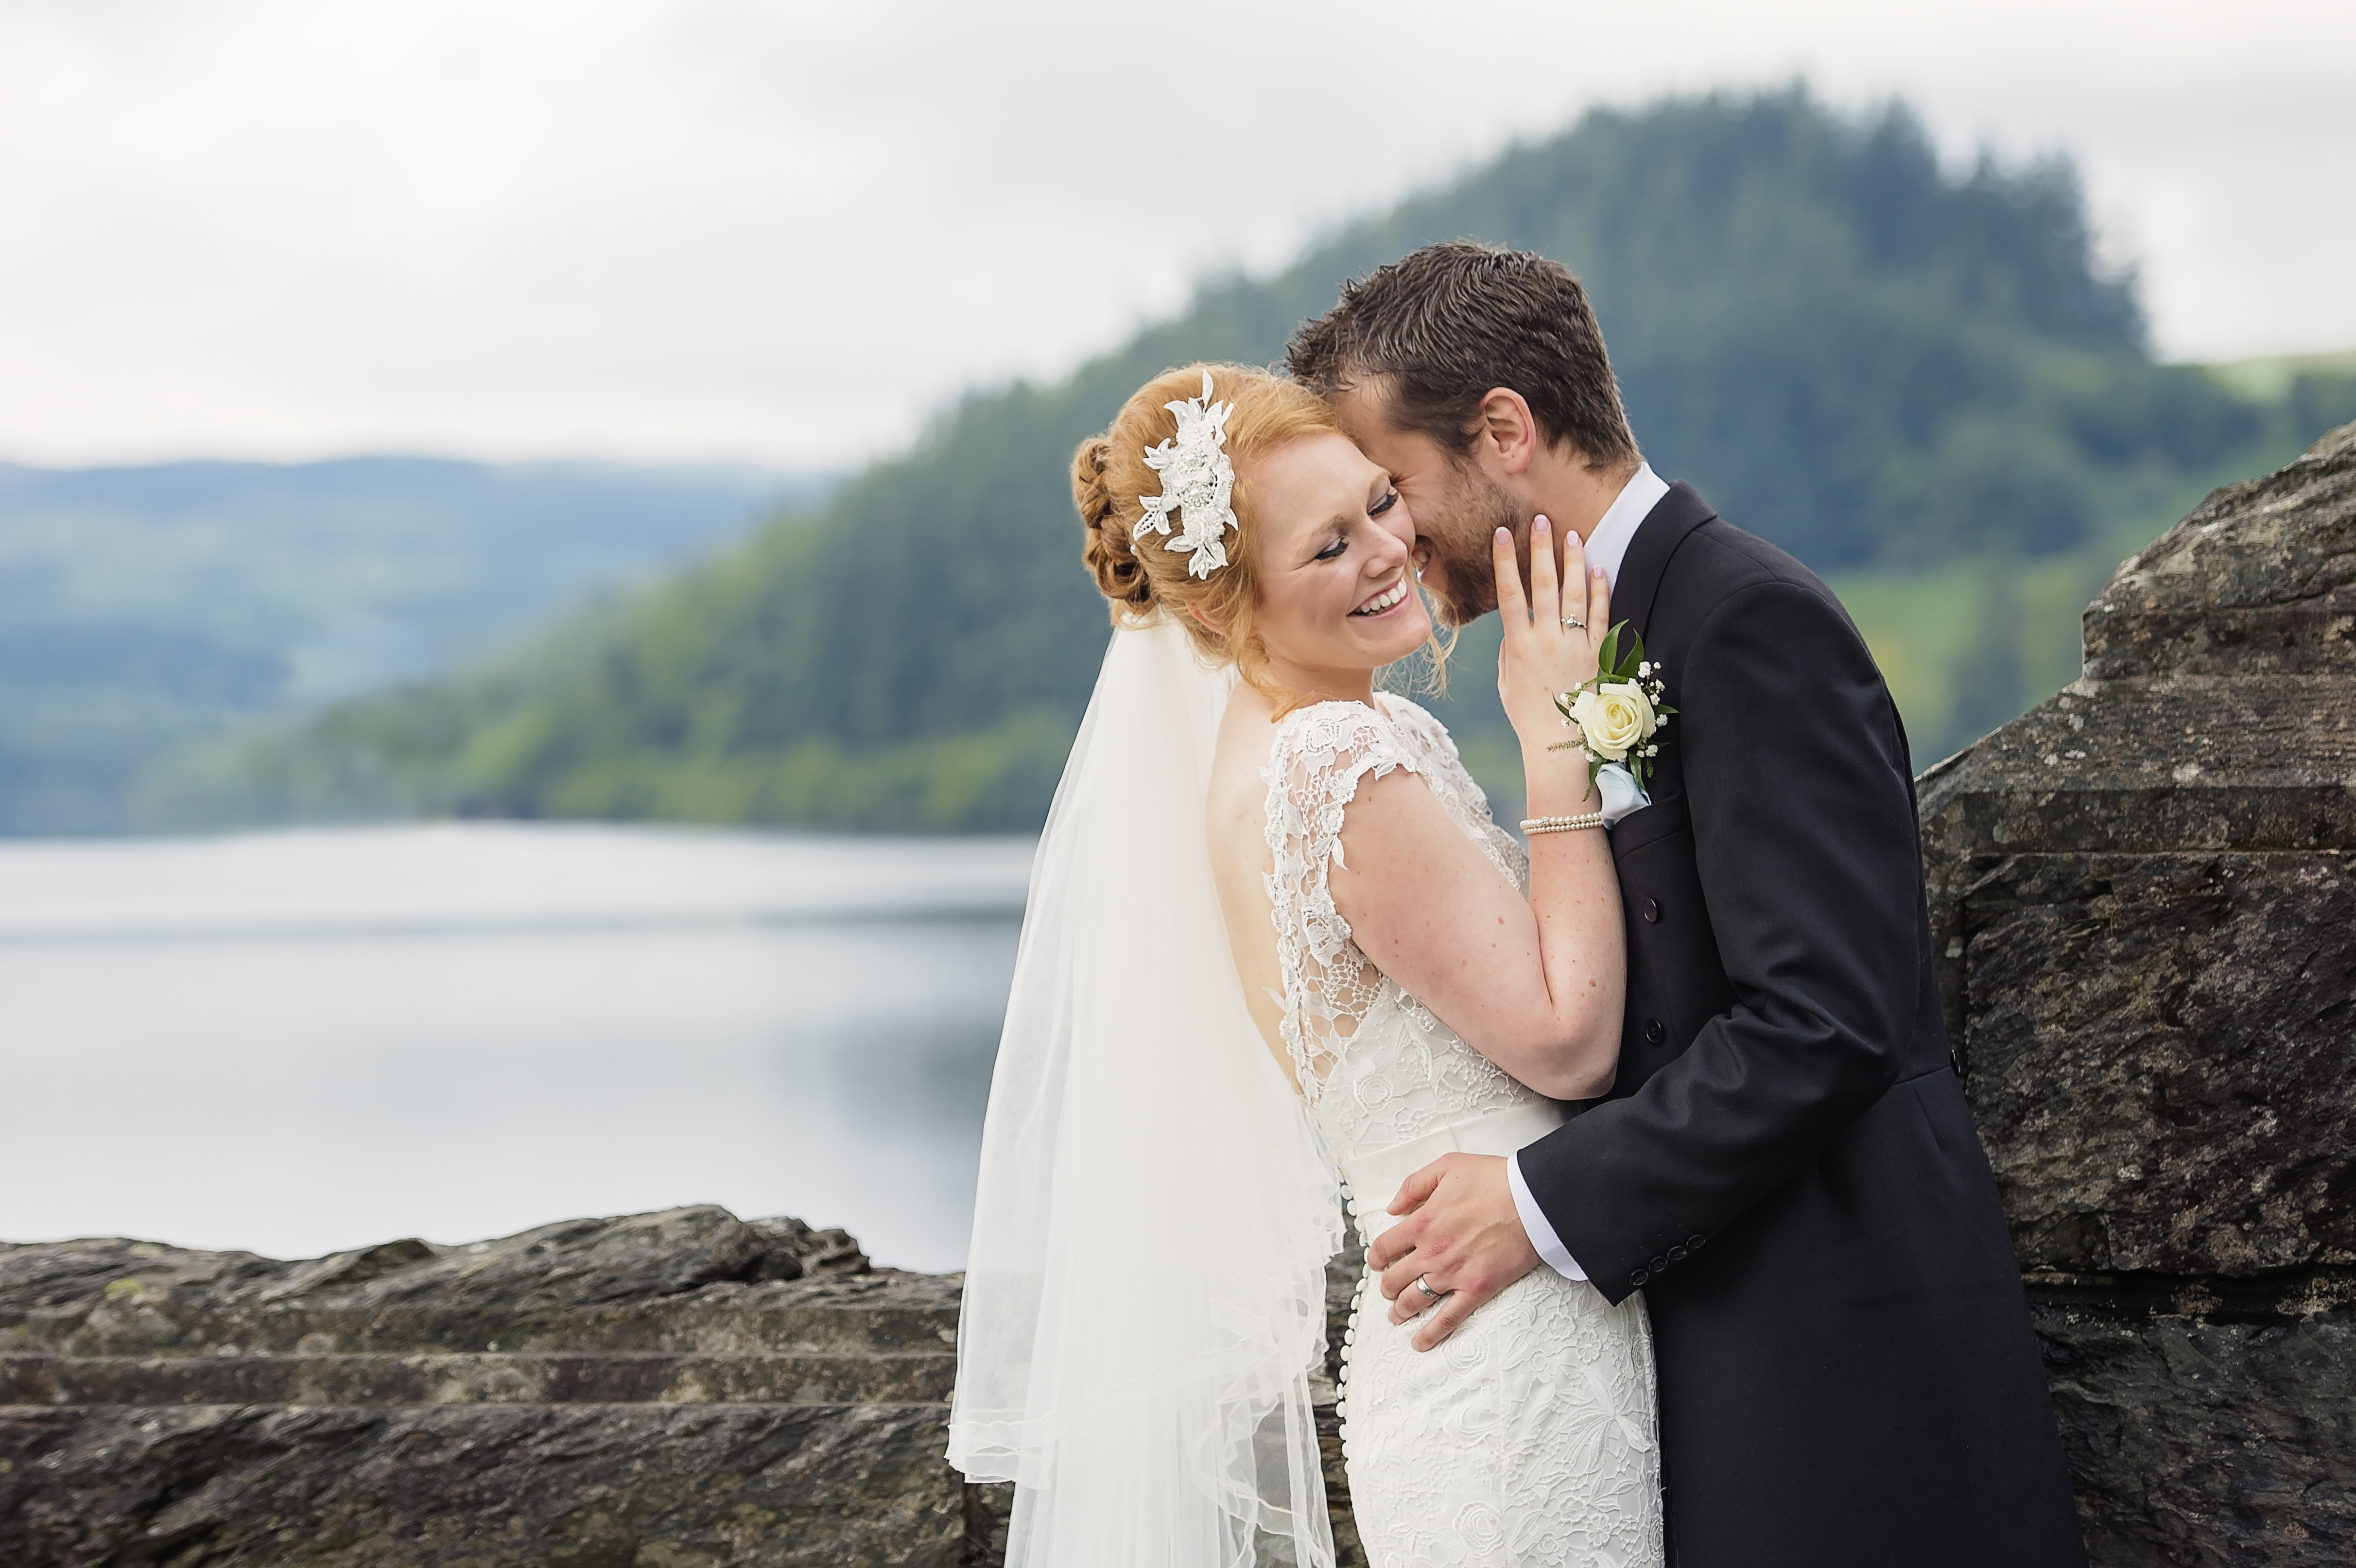 Natural and romantic bride and groom photo in front of Lake Vyrnwy, Wales